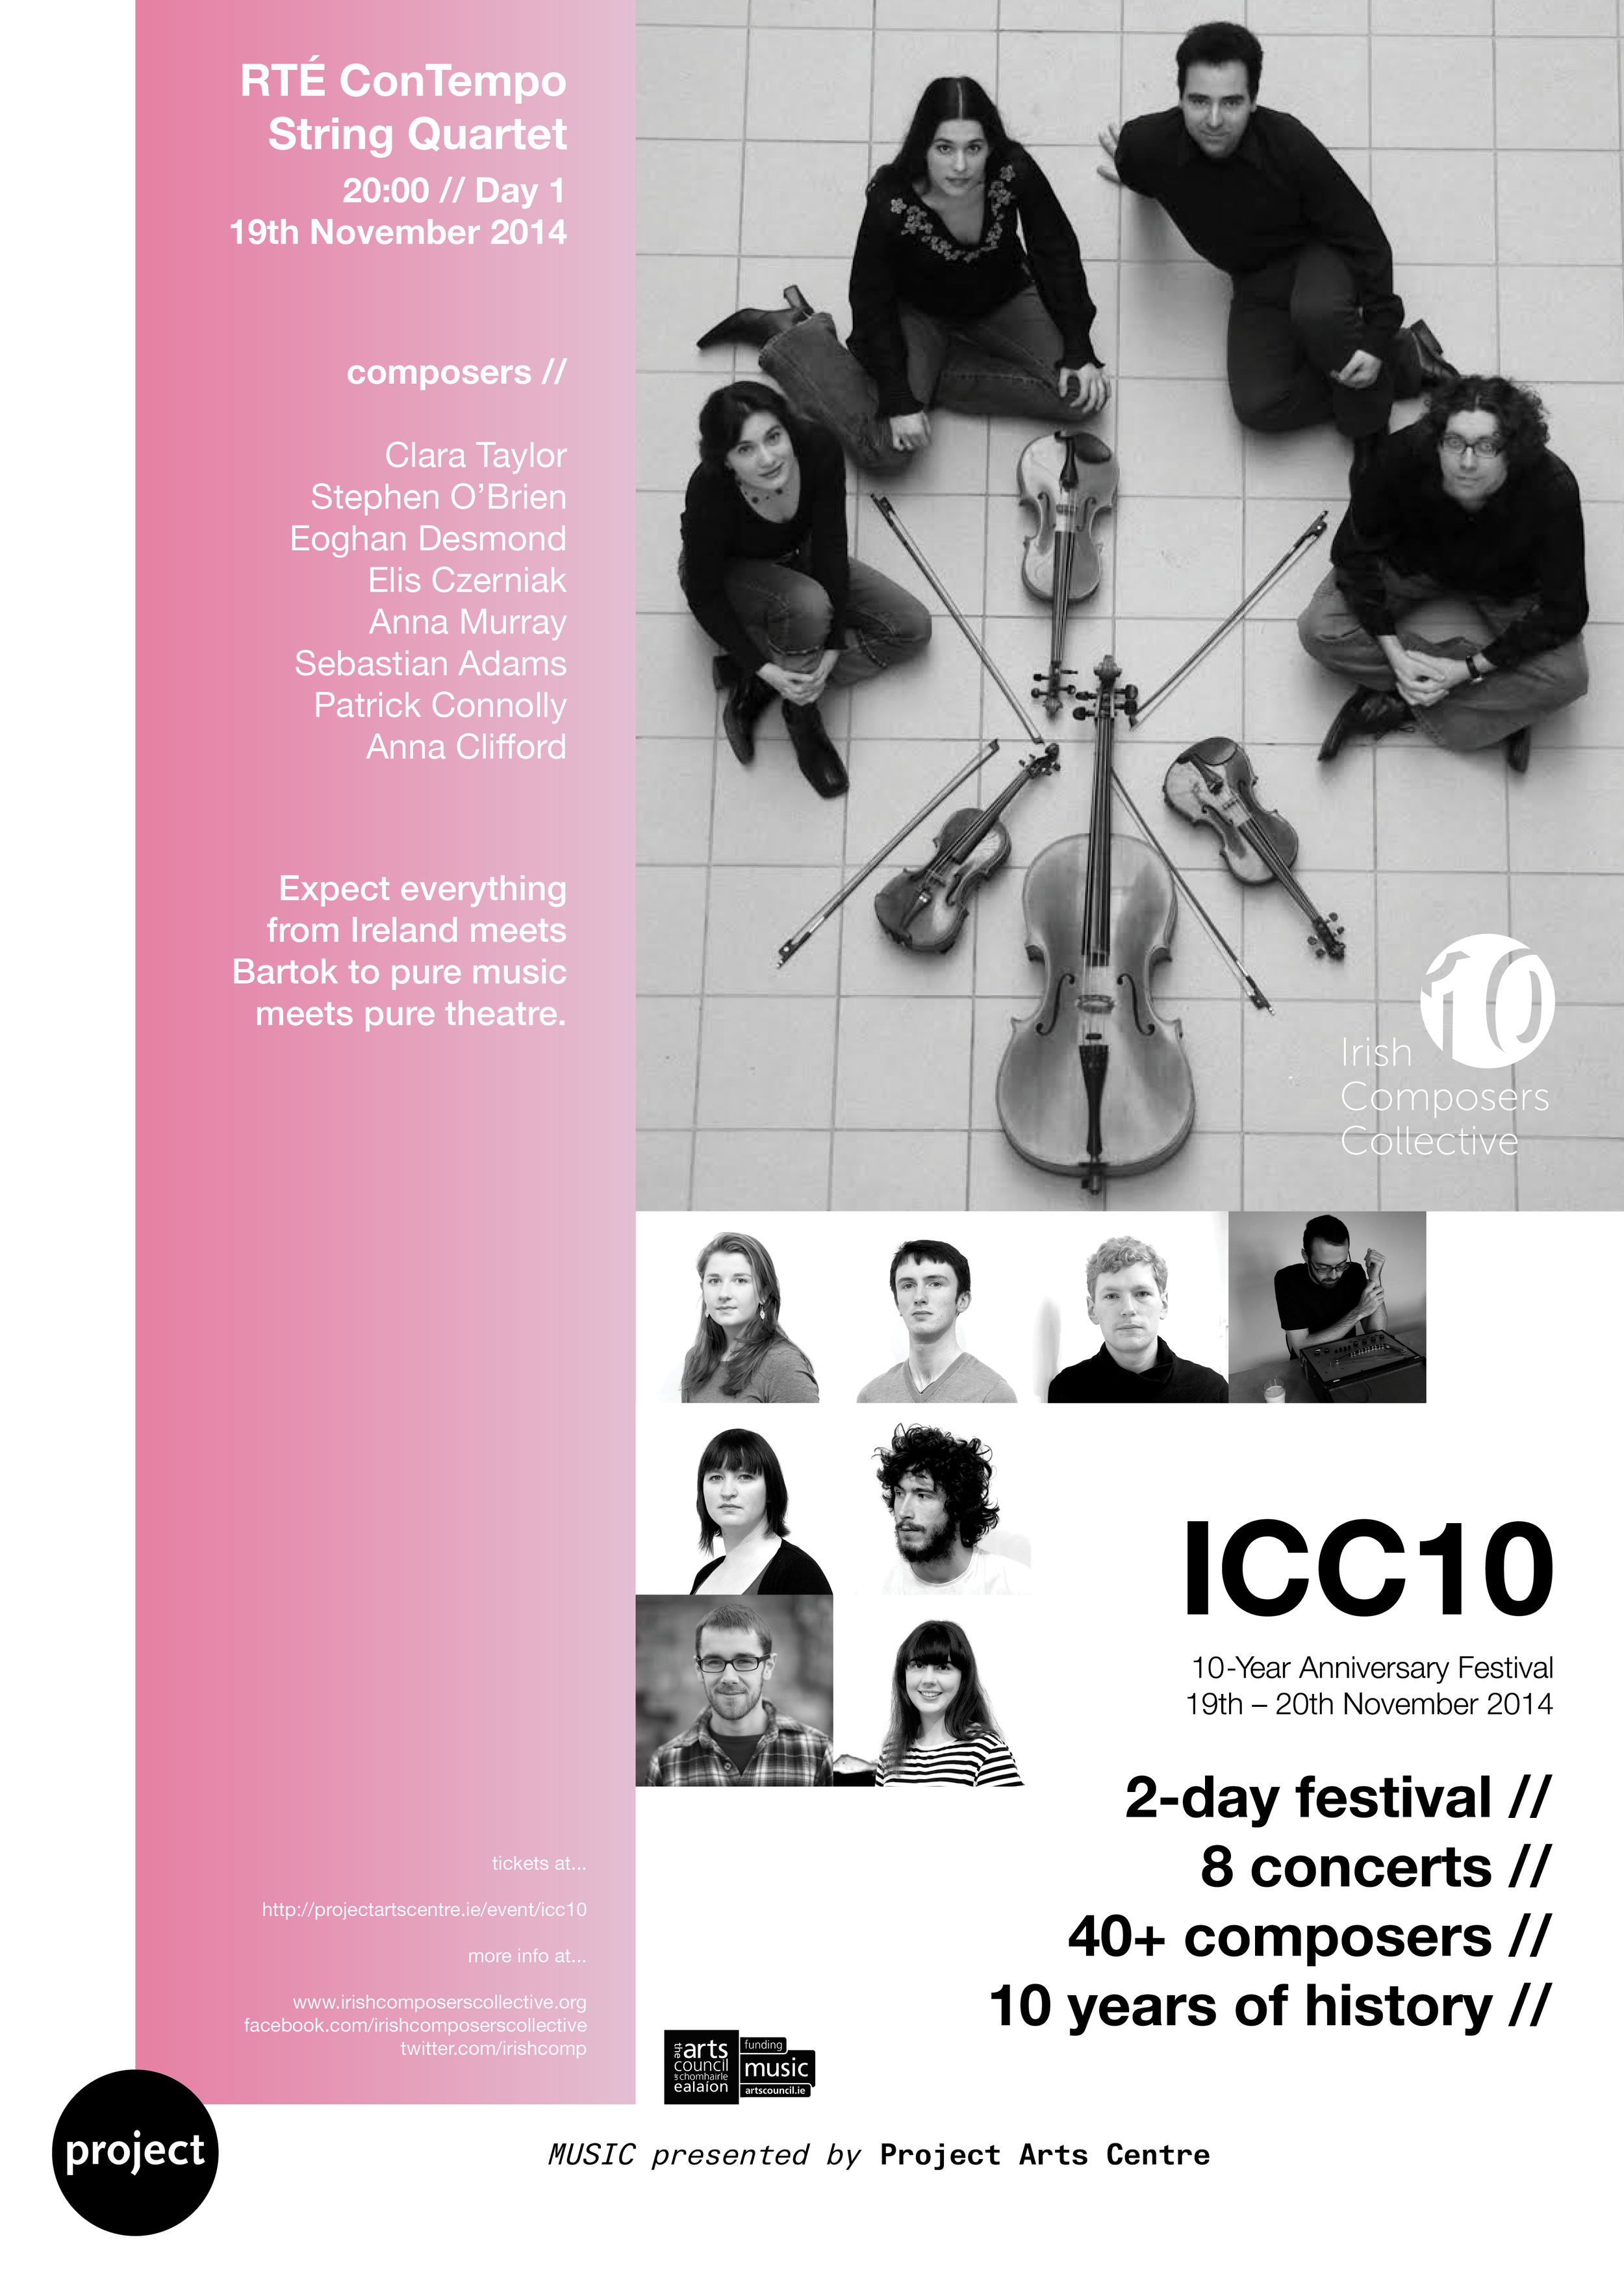 icc10 a3 poster_ConTempo.png